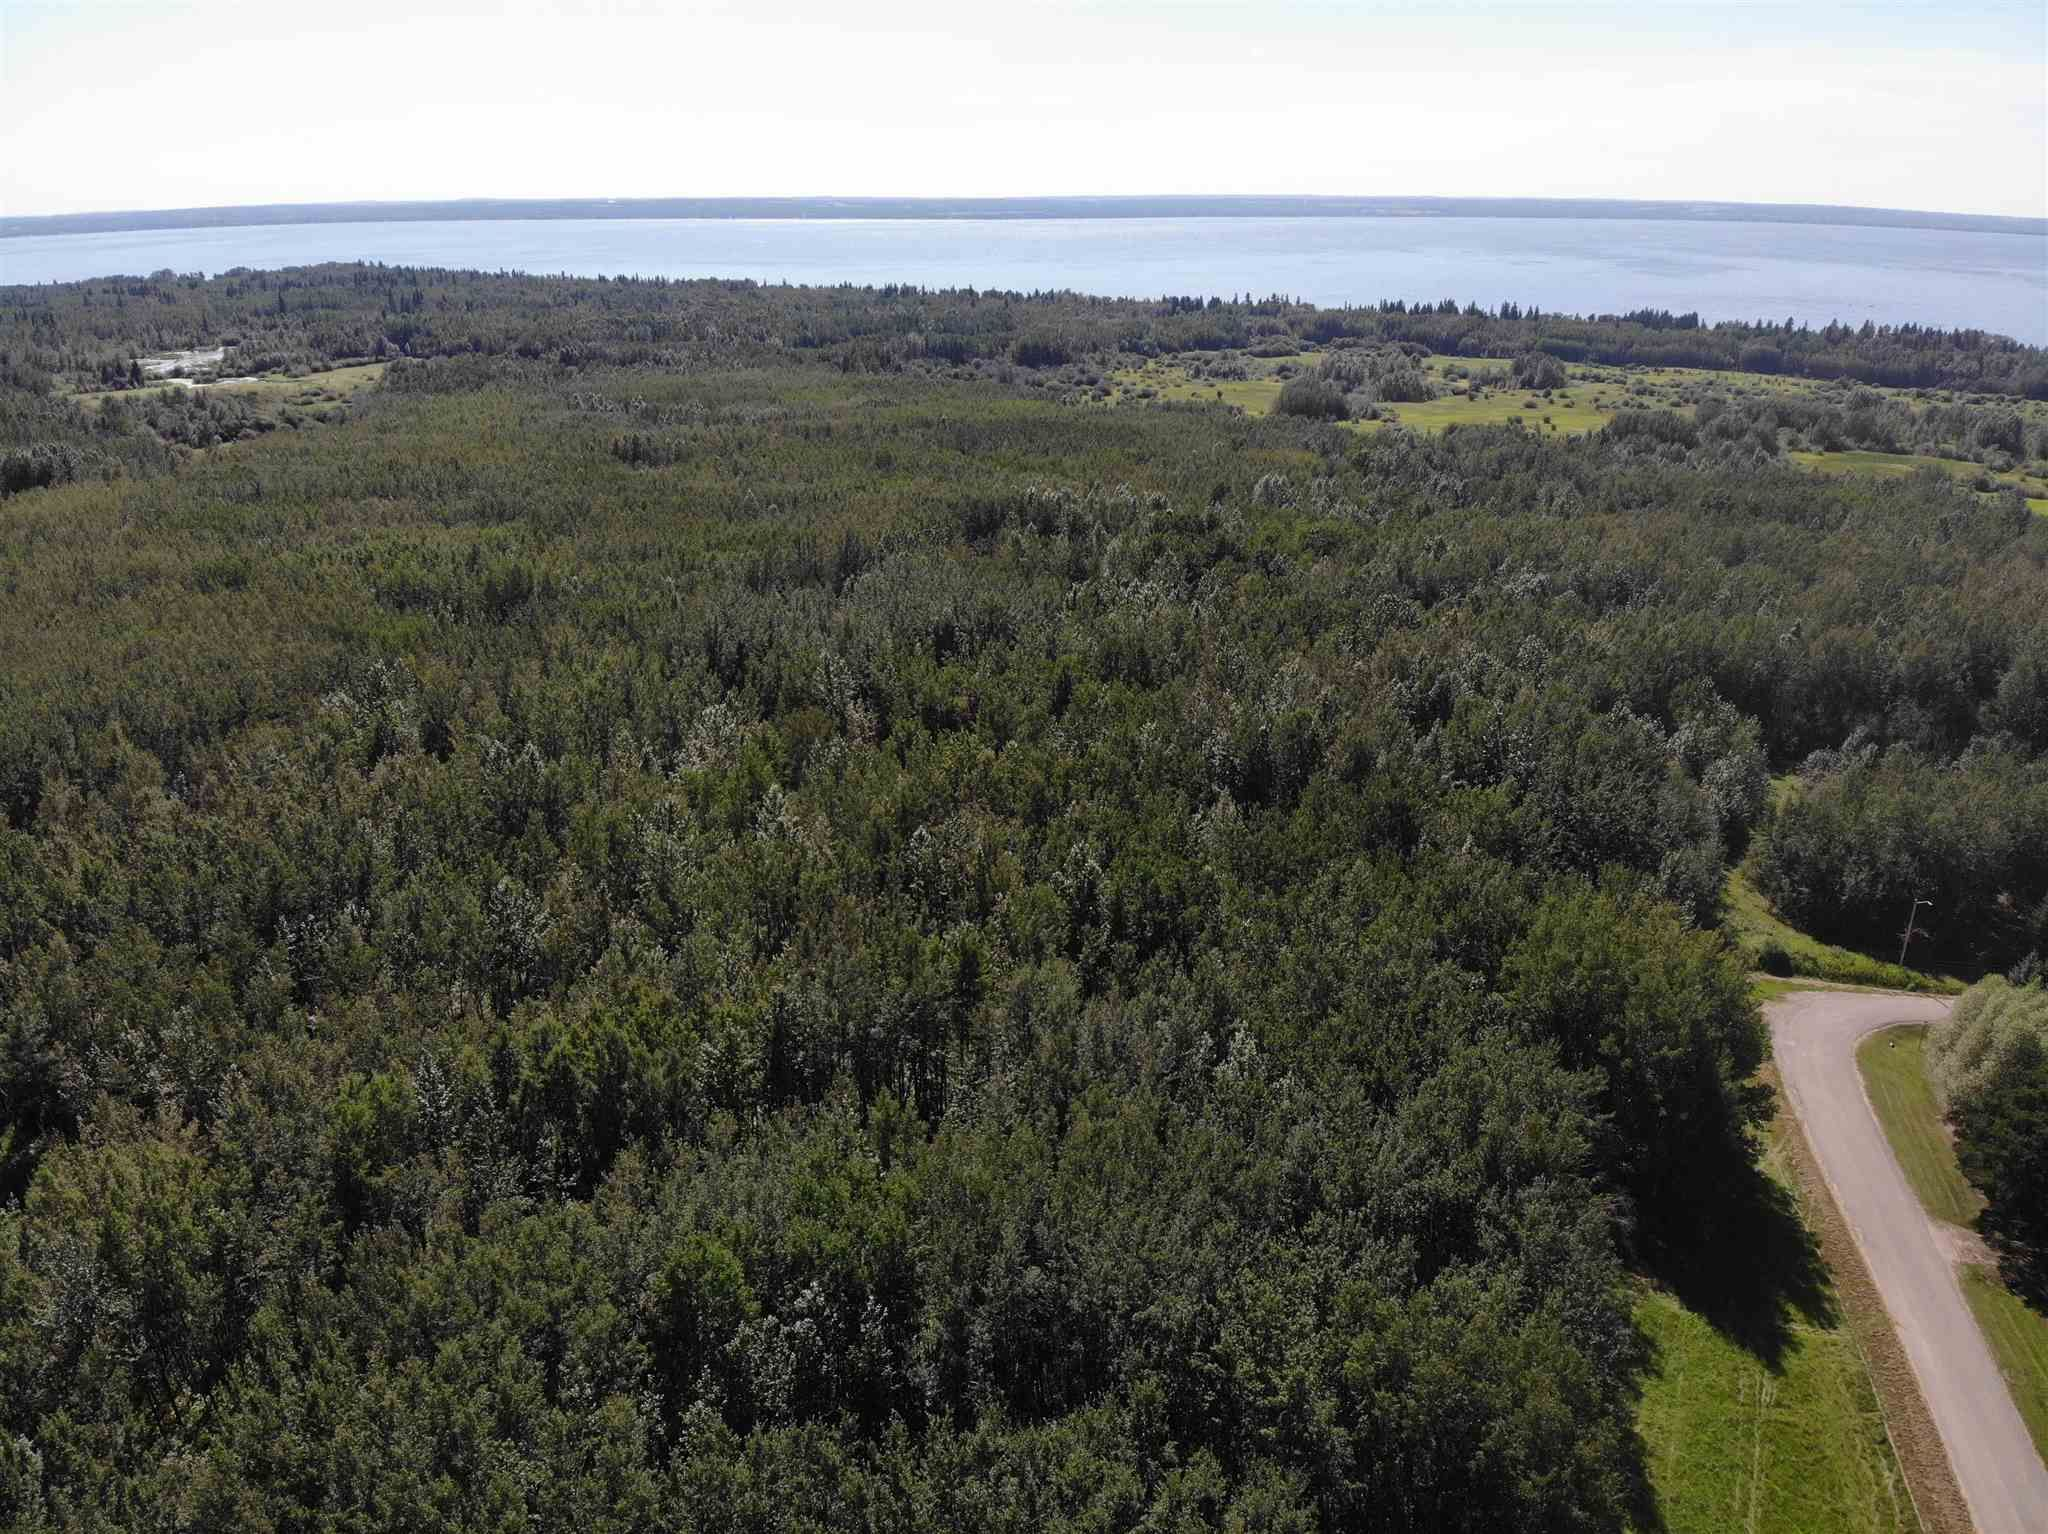 Main Photo: 50 Ave RR 281: Rural Wetaskiwin County Rural Land/Vacant Lot for sale : MLS®# E4191216